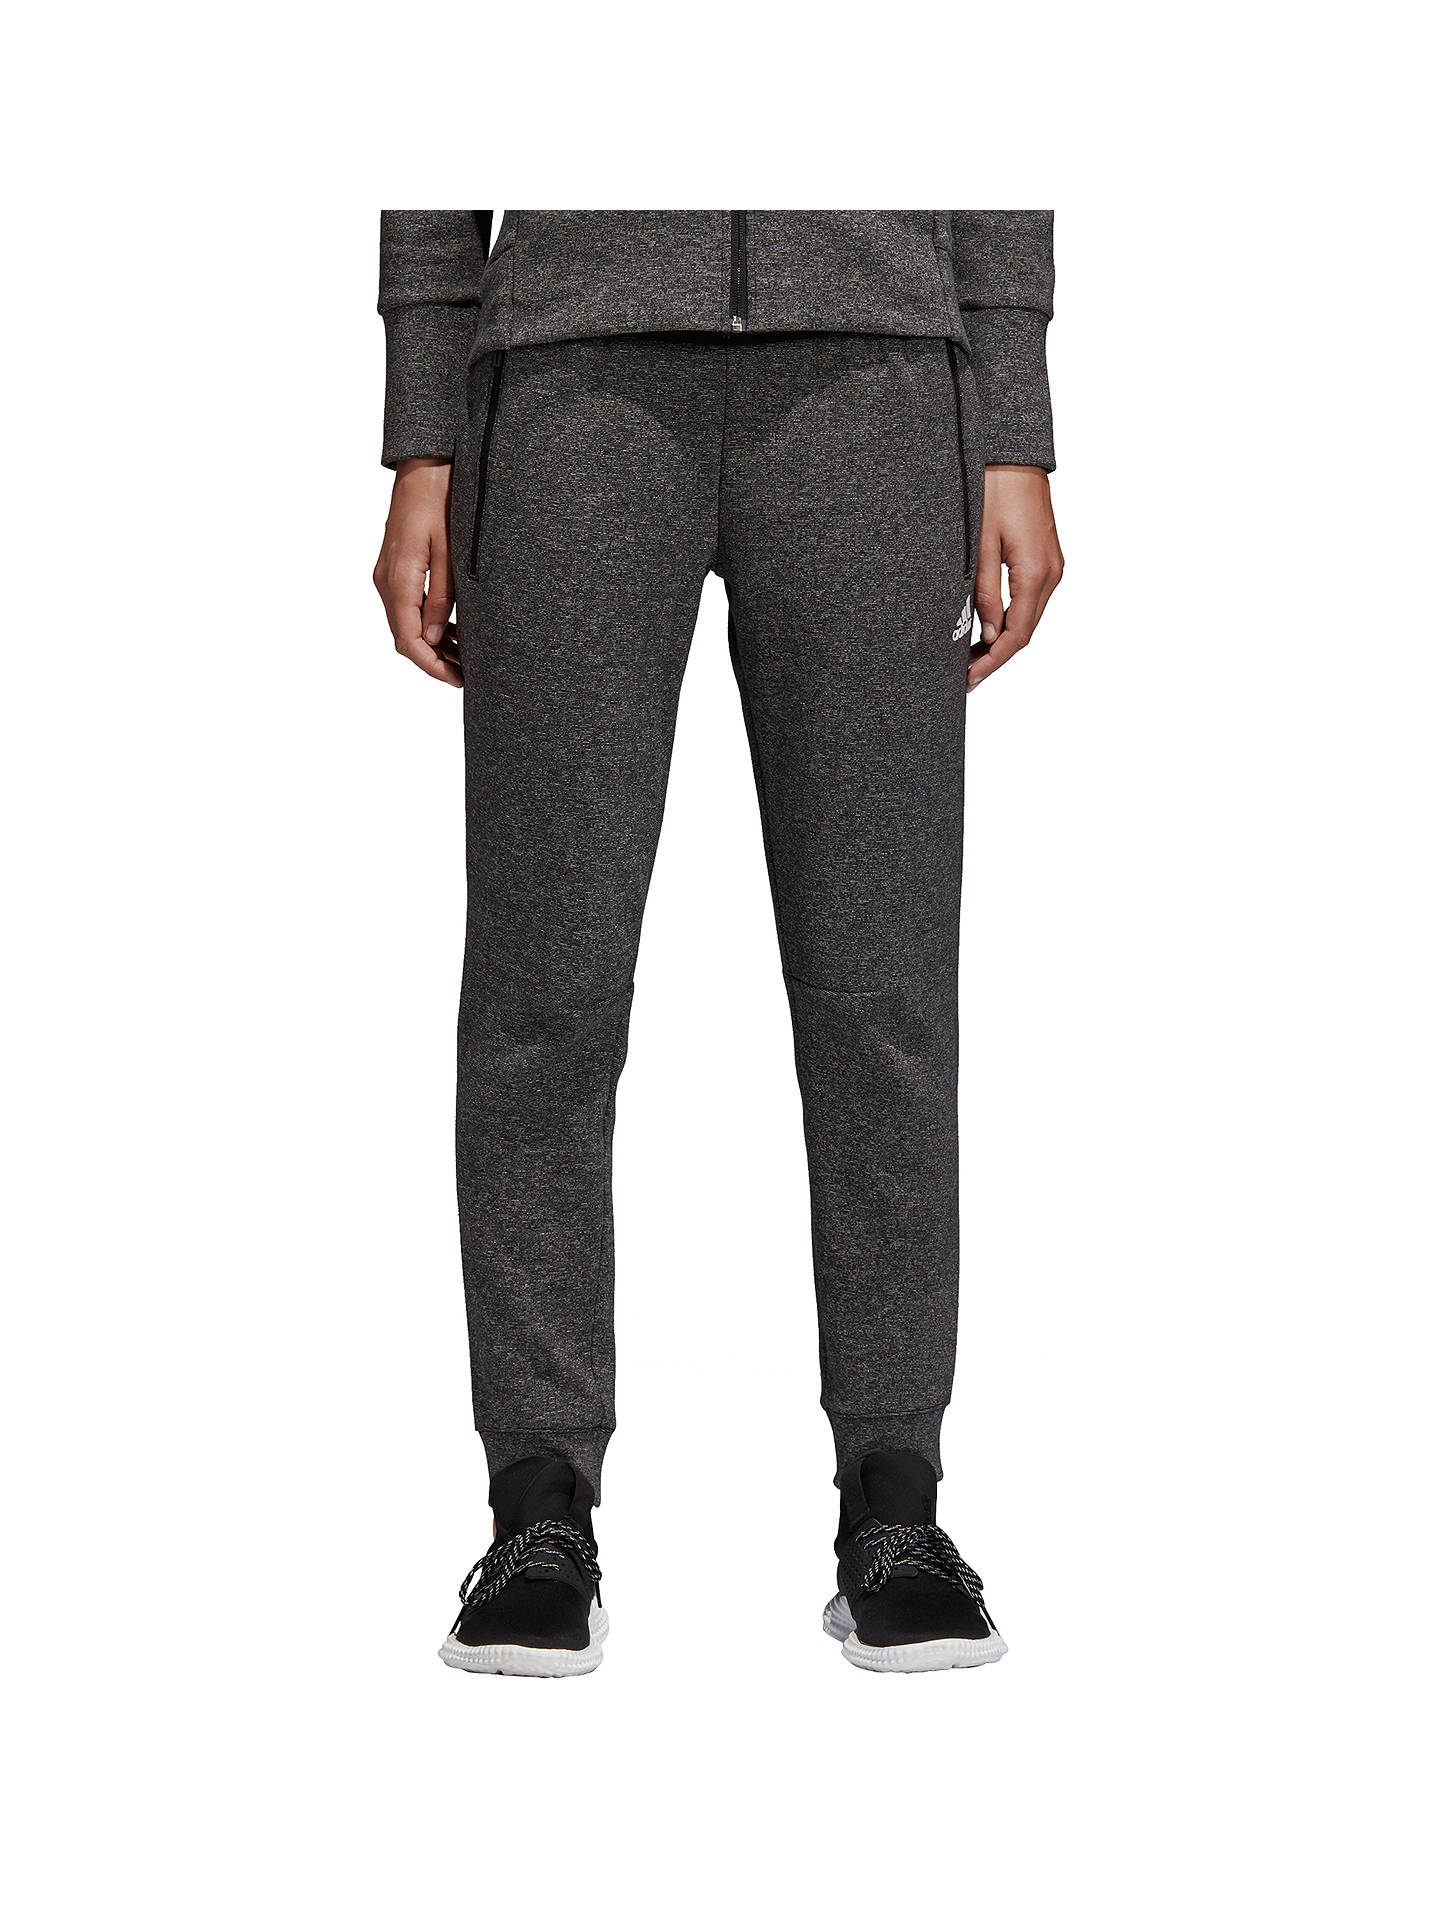 Buyadidas ID Stadium Joggers, Black/Heather, XS Online at johnlewis.com